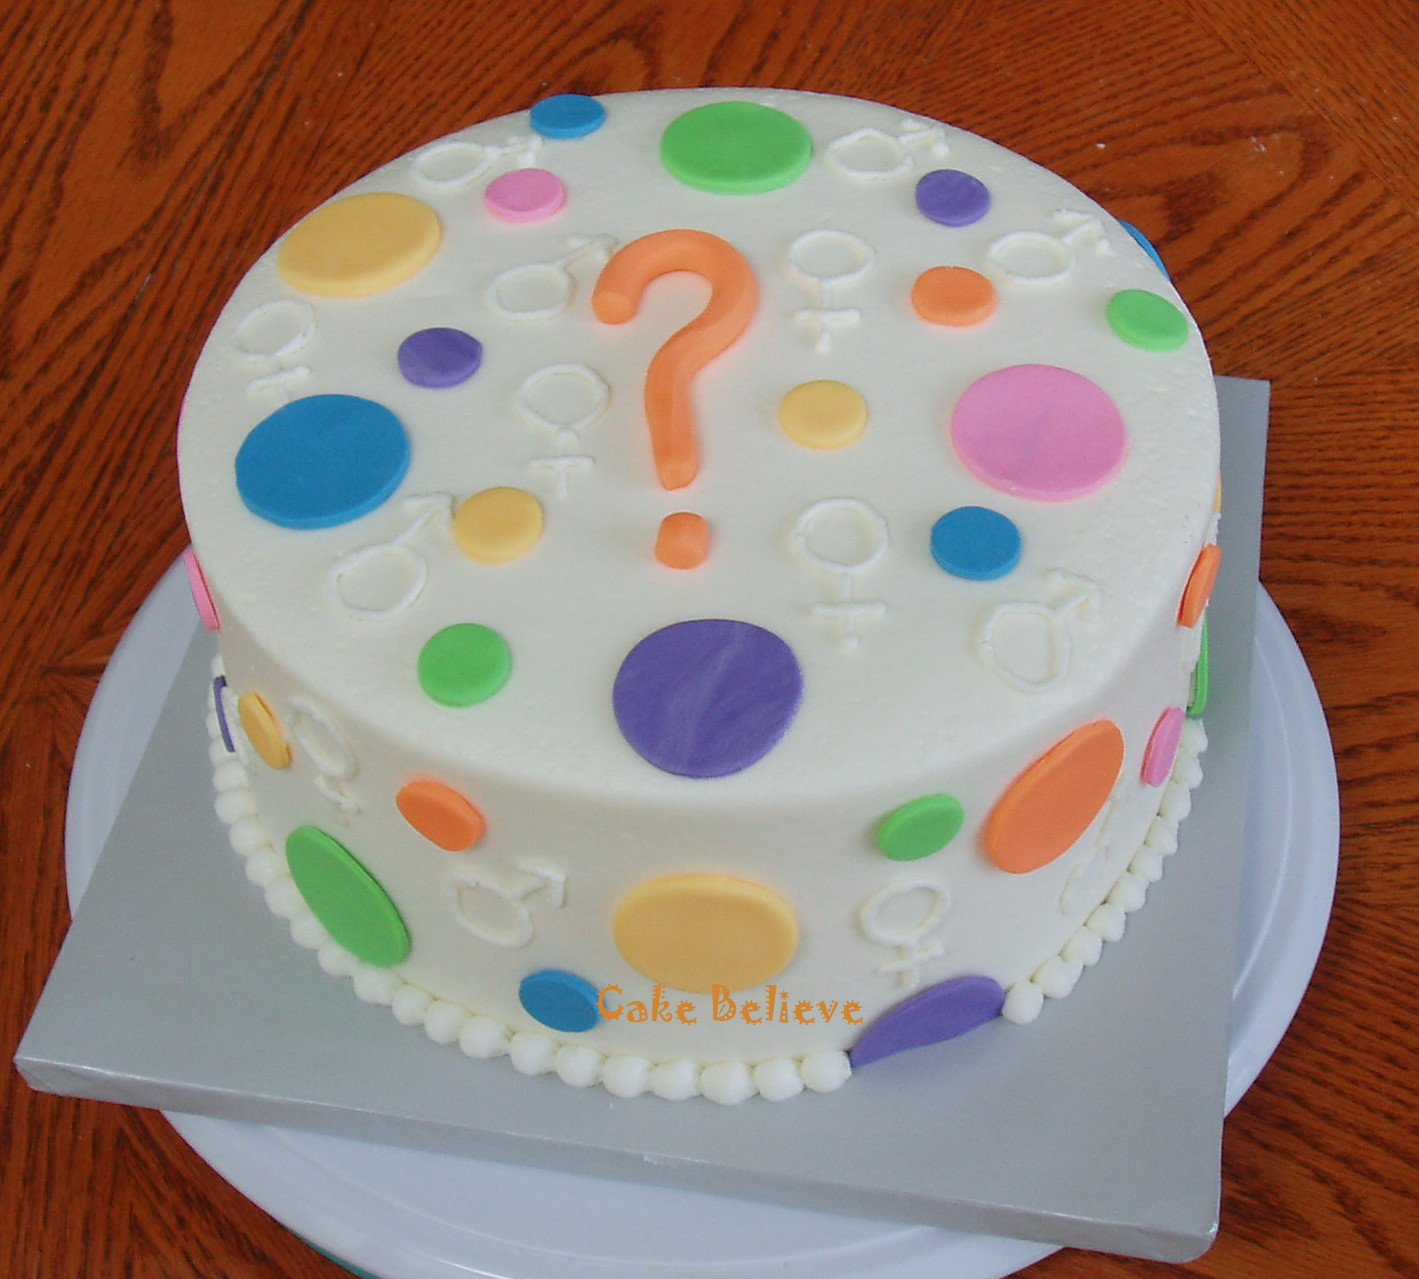 Cake Believe: Baby Gender Reveal Cake